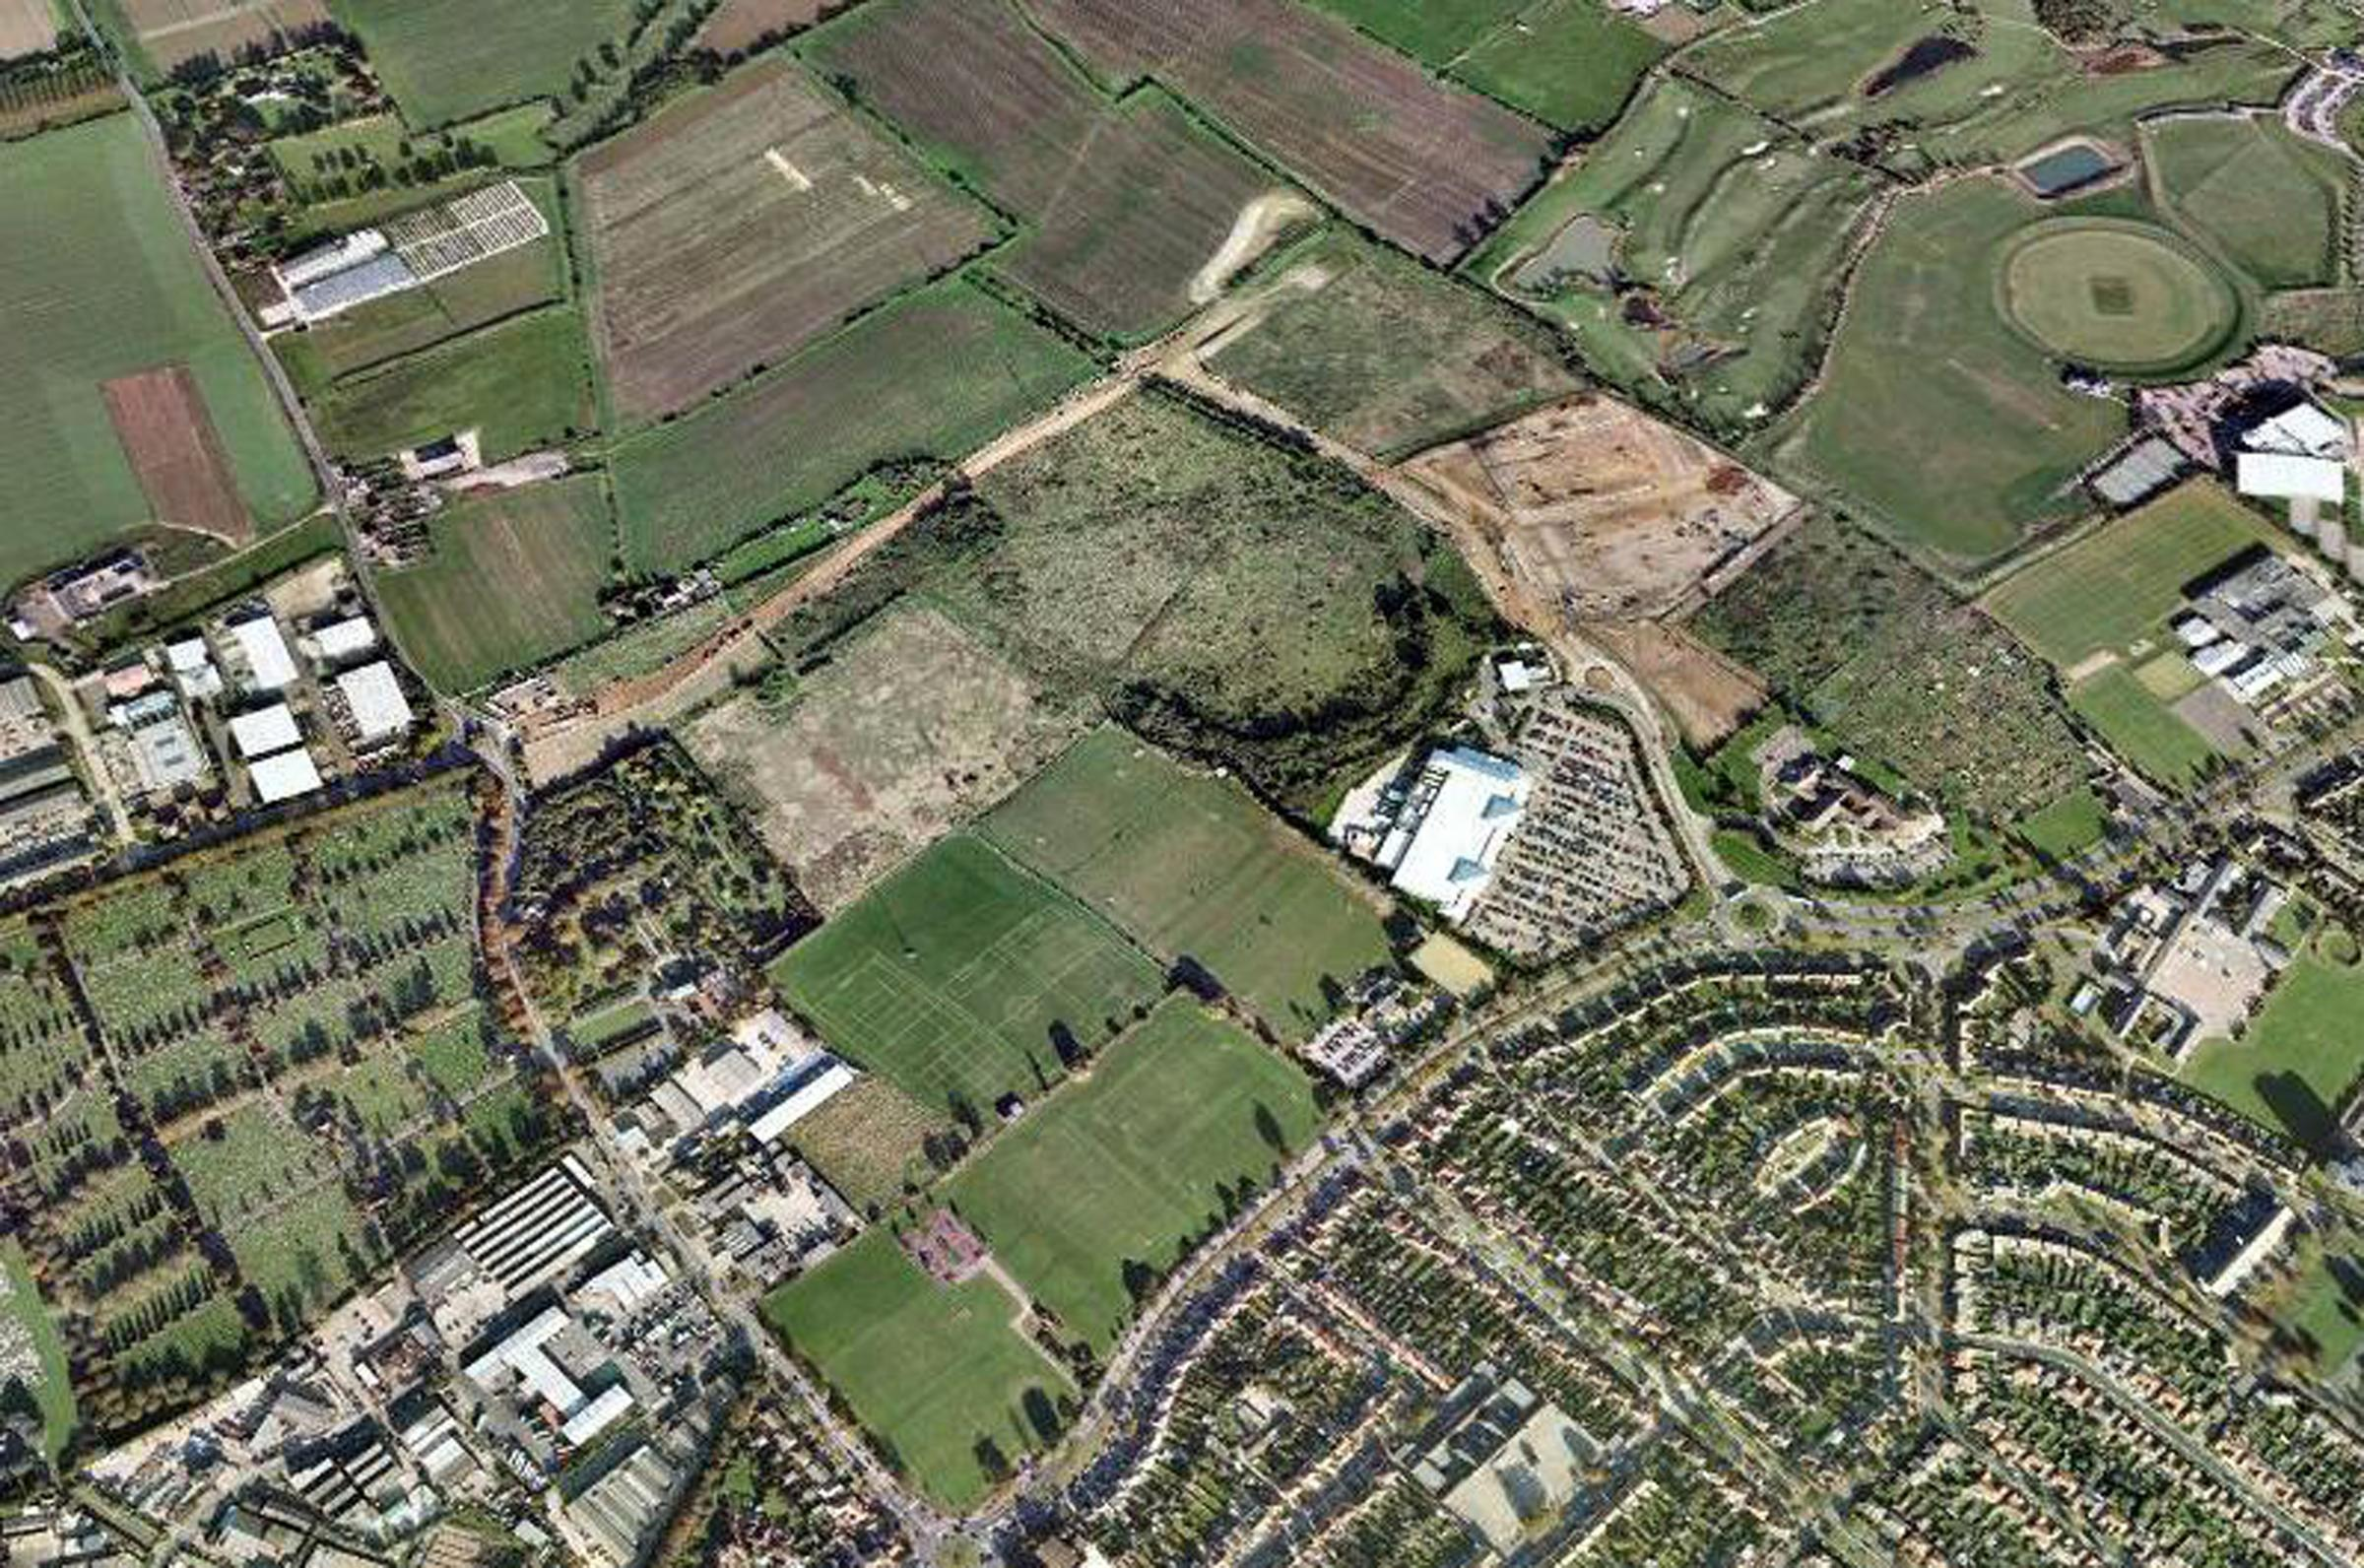 Potential - an aerial view of the Fossetts Farm site